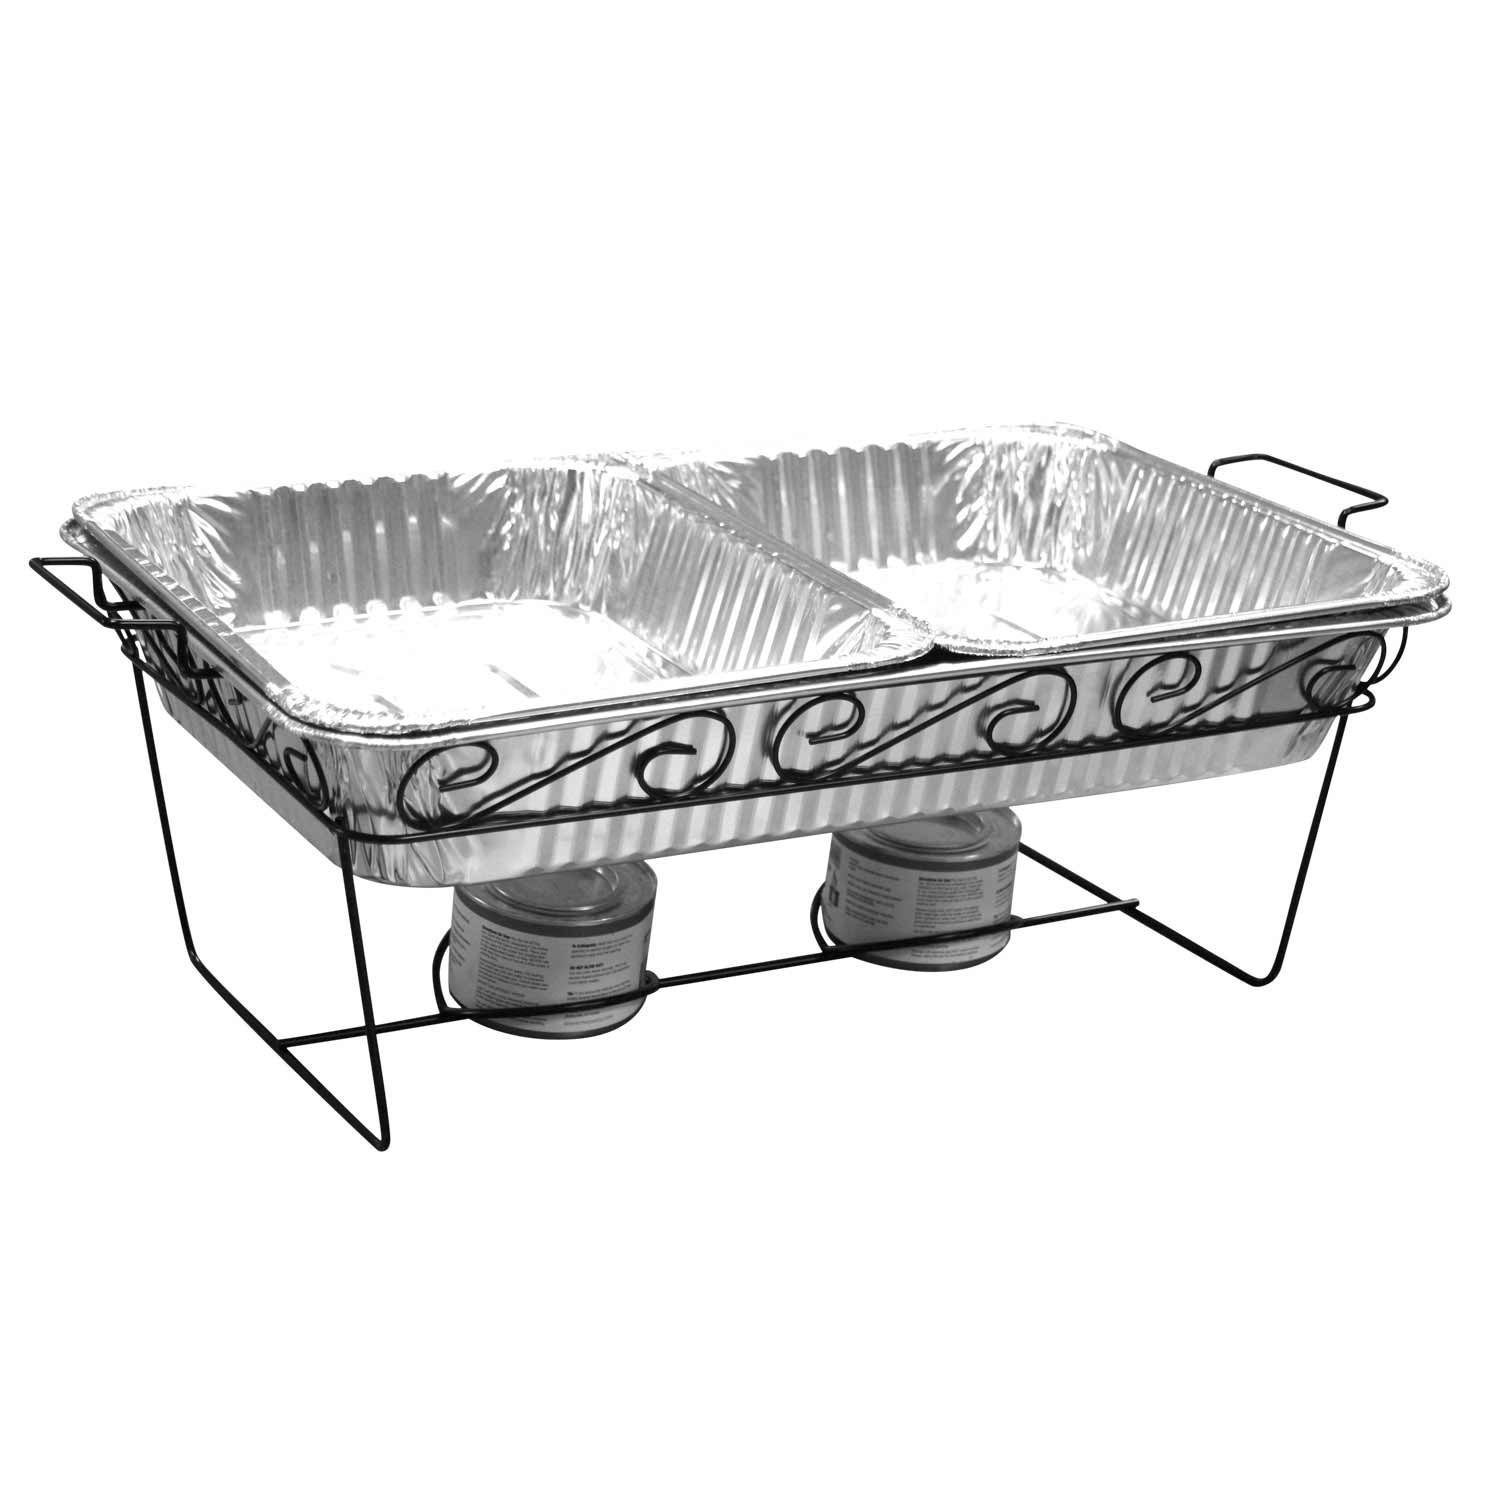 Chafing Dish Rack Cosmecol